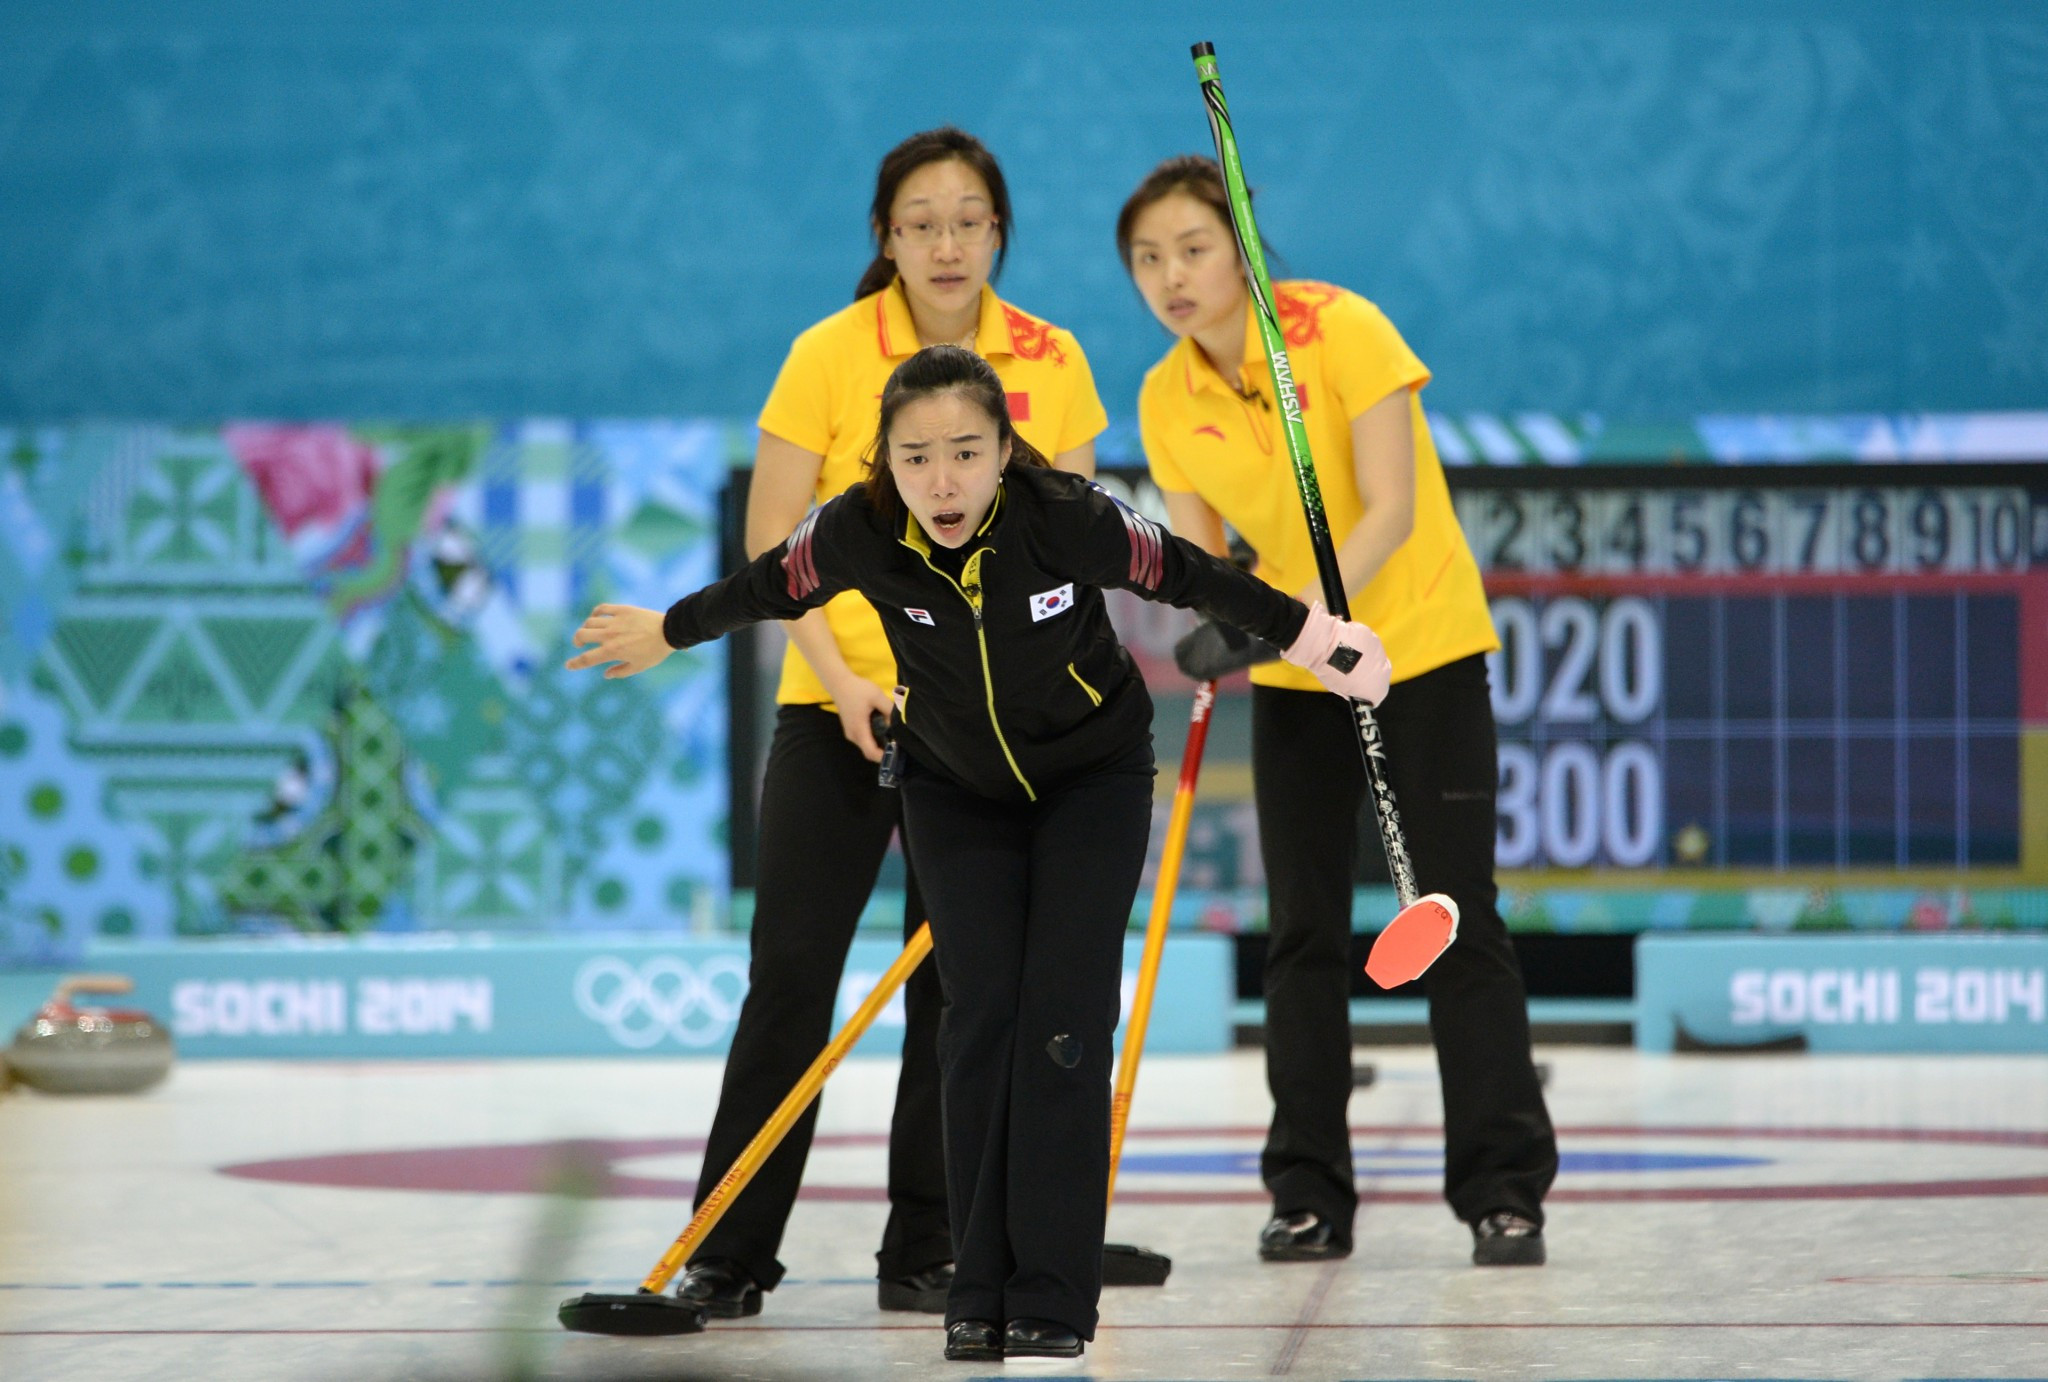 South Korean curlers include rowing in training regime